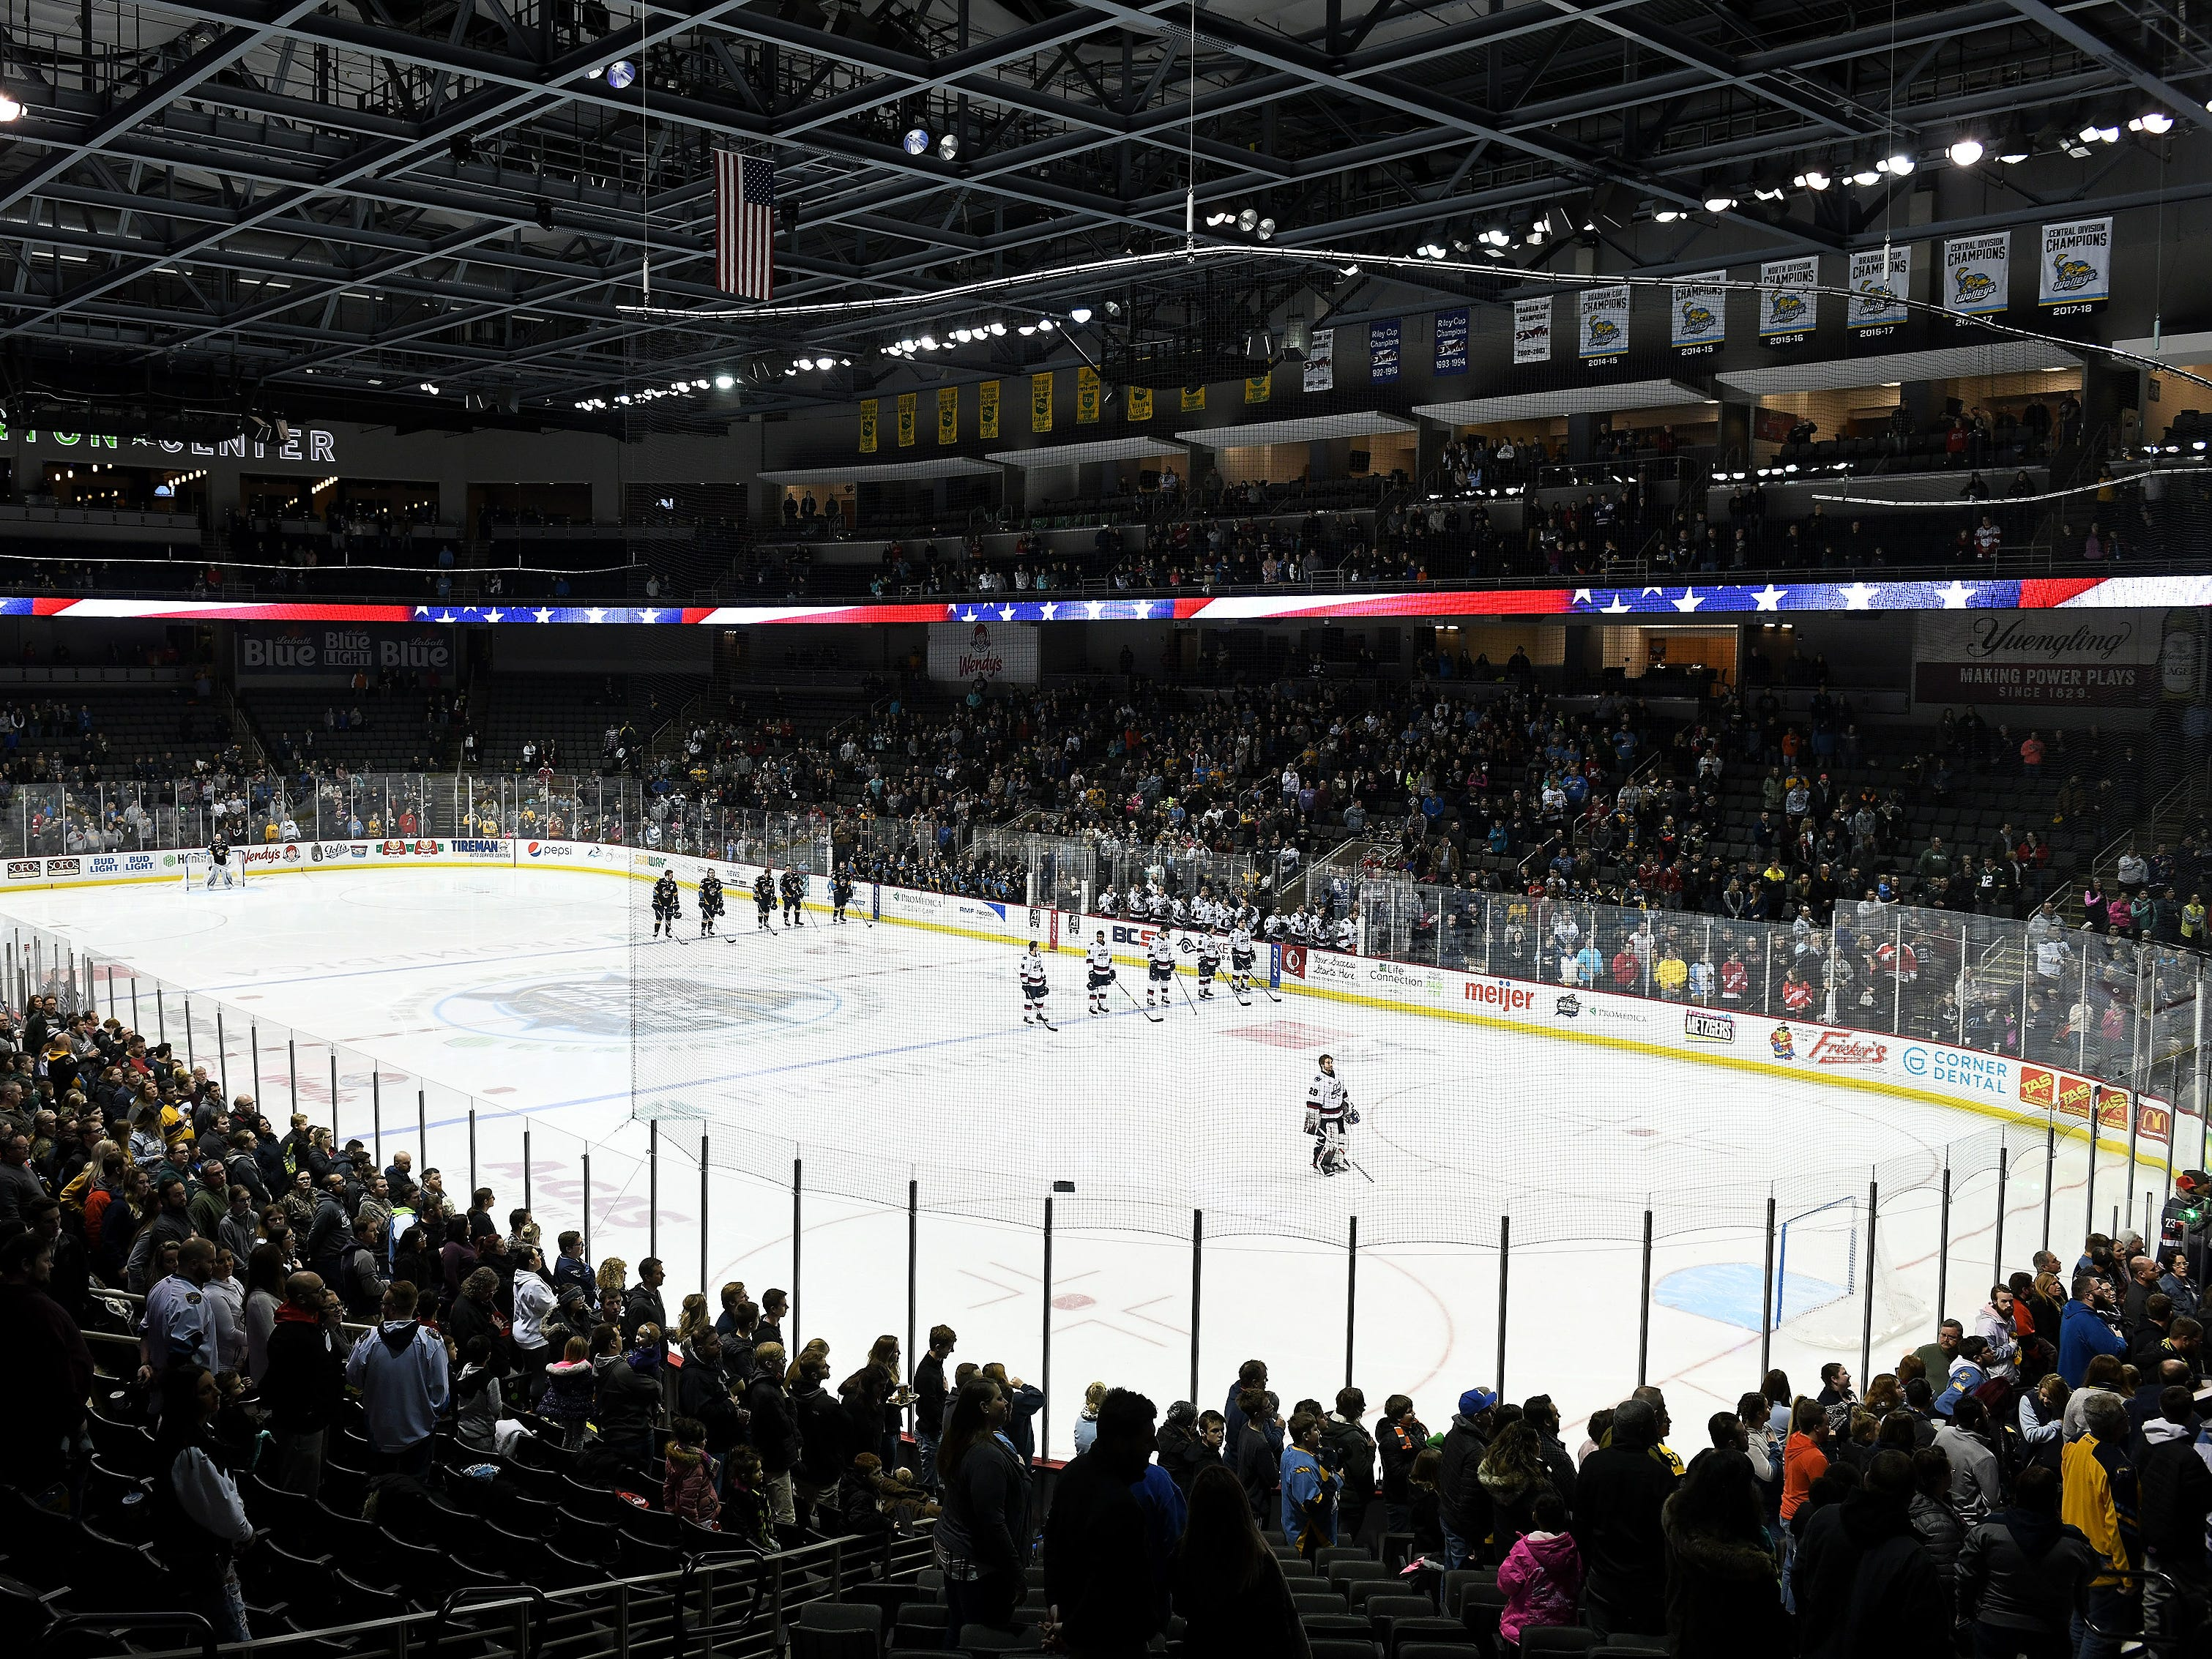 Players and fans stand for the national anthem before a game Thursday, Jan. 31, 2019, between the Toledo Walleye and the Kalamazoo Wings at the Huntington Center in Toledo, Ohio.